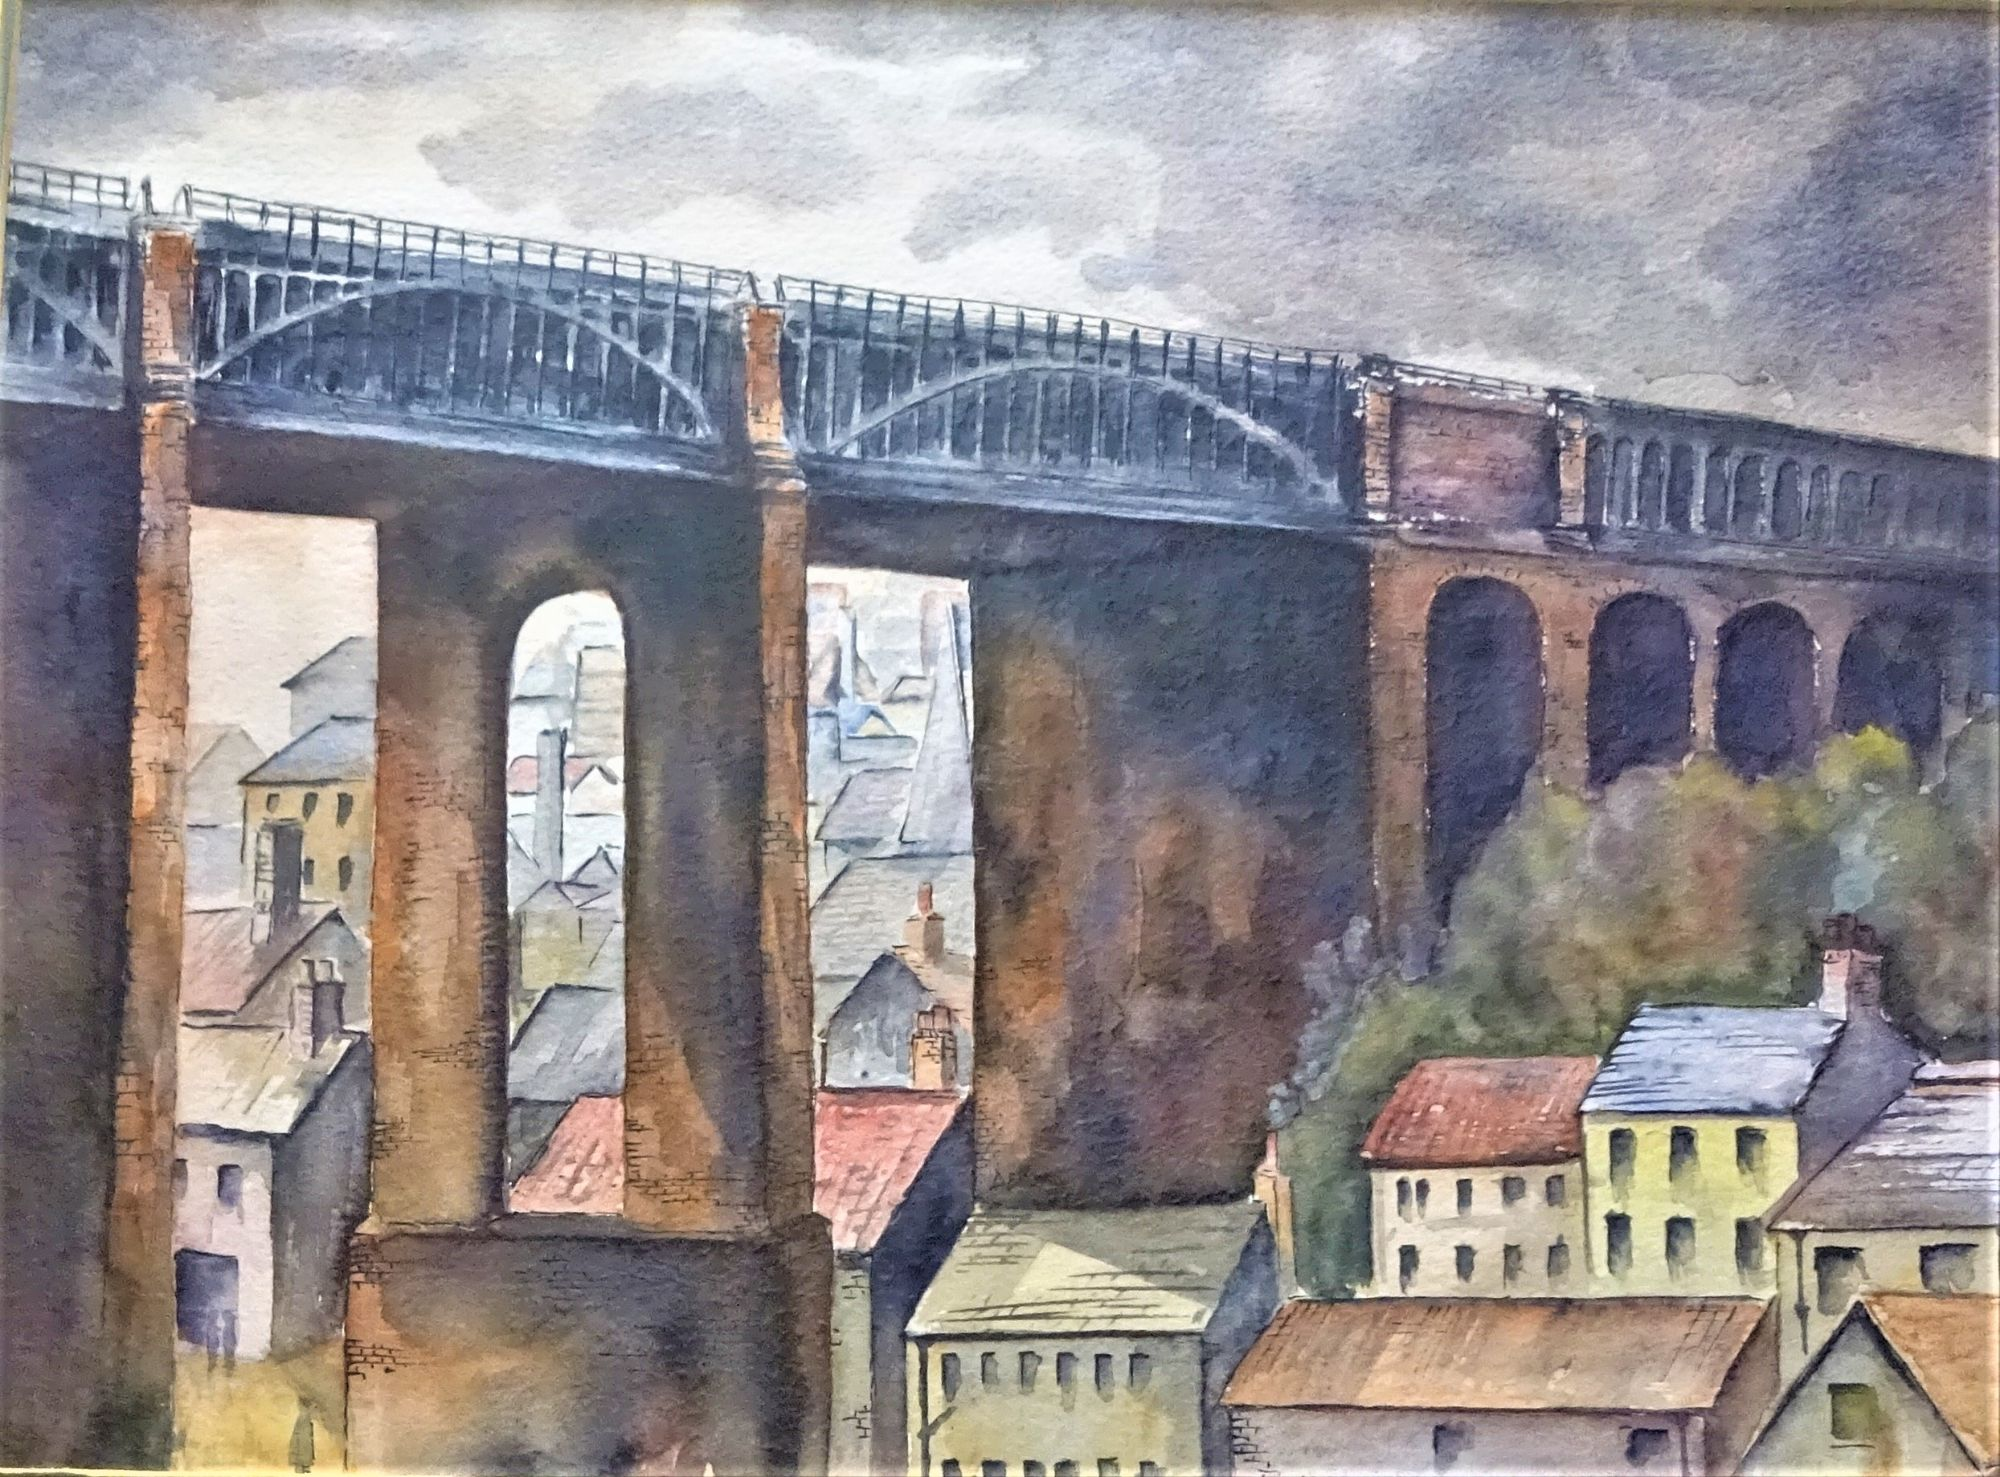 Newcastle-upon-Tyne High Level Bridge, watercolour on paper, signed DEK (Derek Oldham) July 1999. Framed.